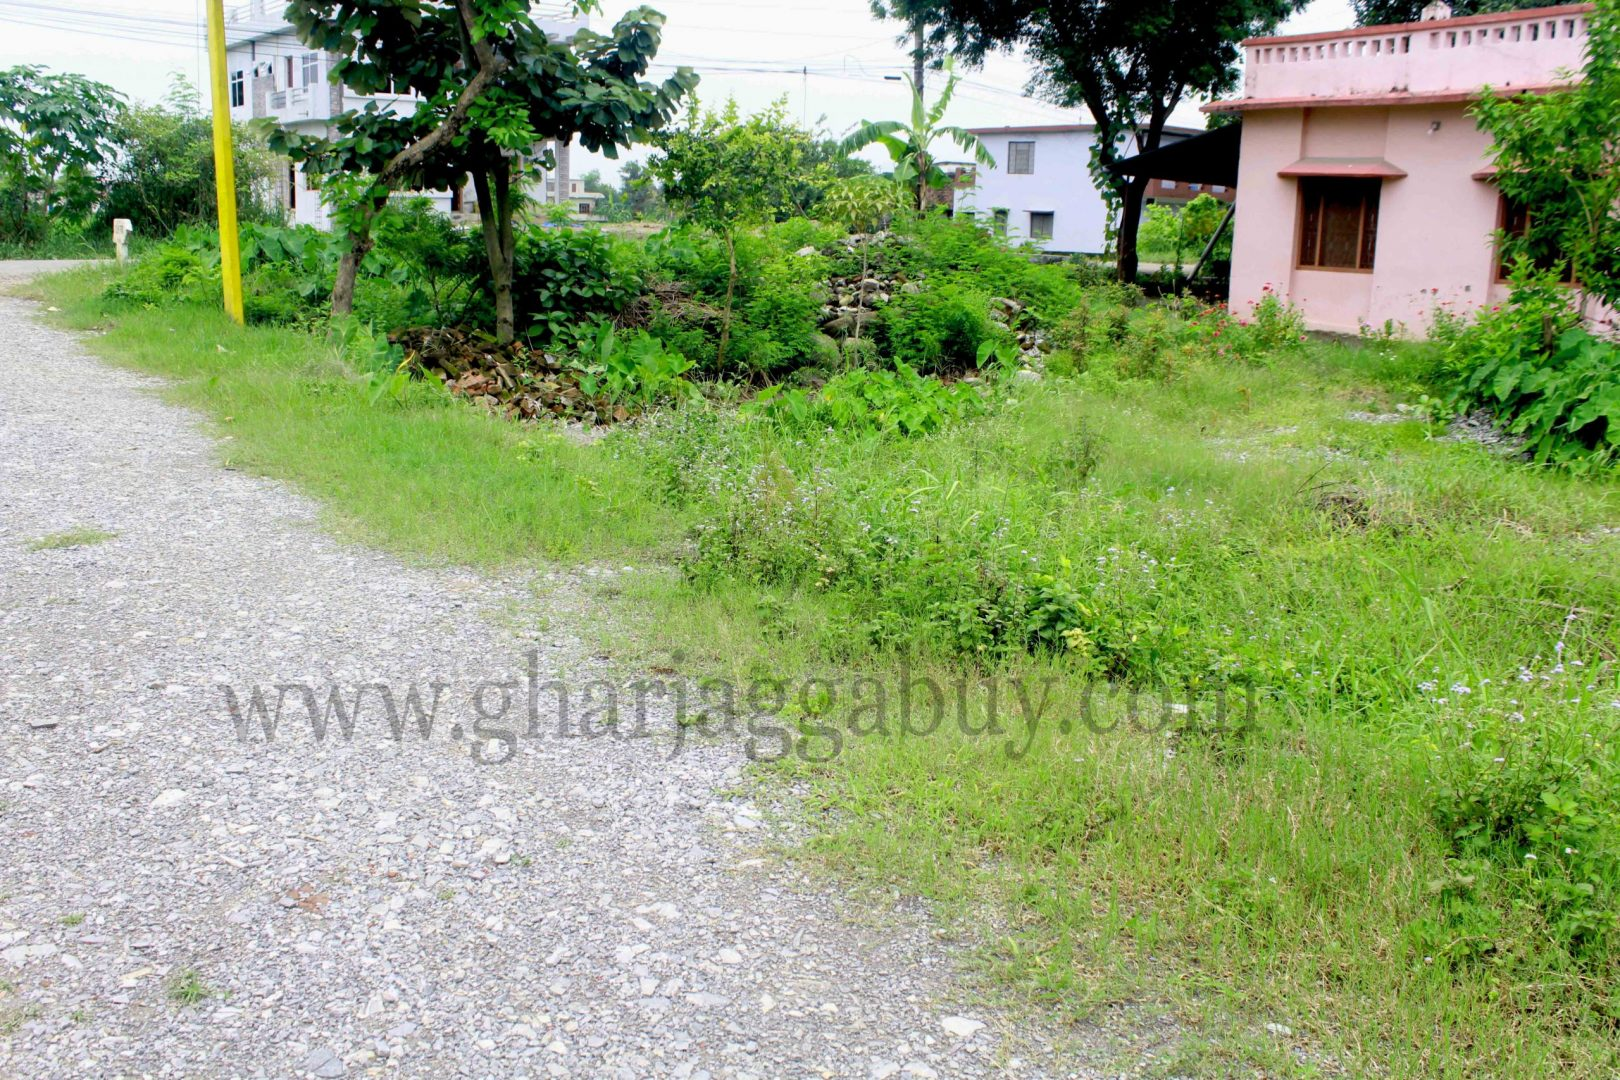 Land for sale in Manigram, Rupandehi near Highway